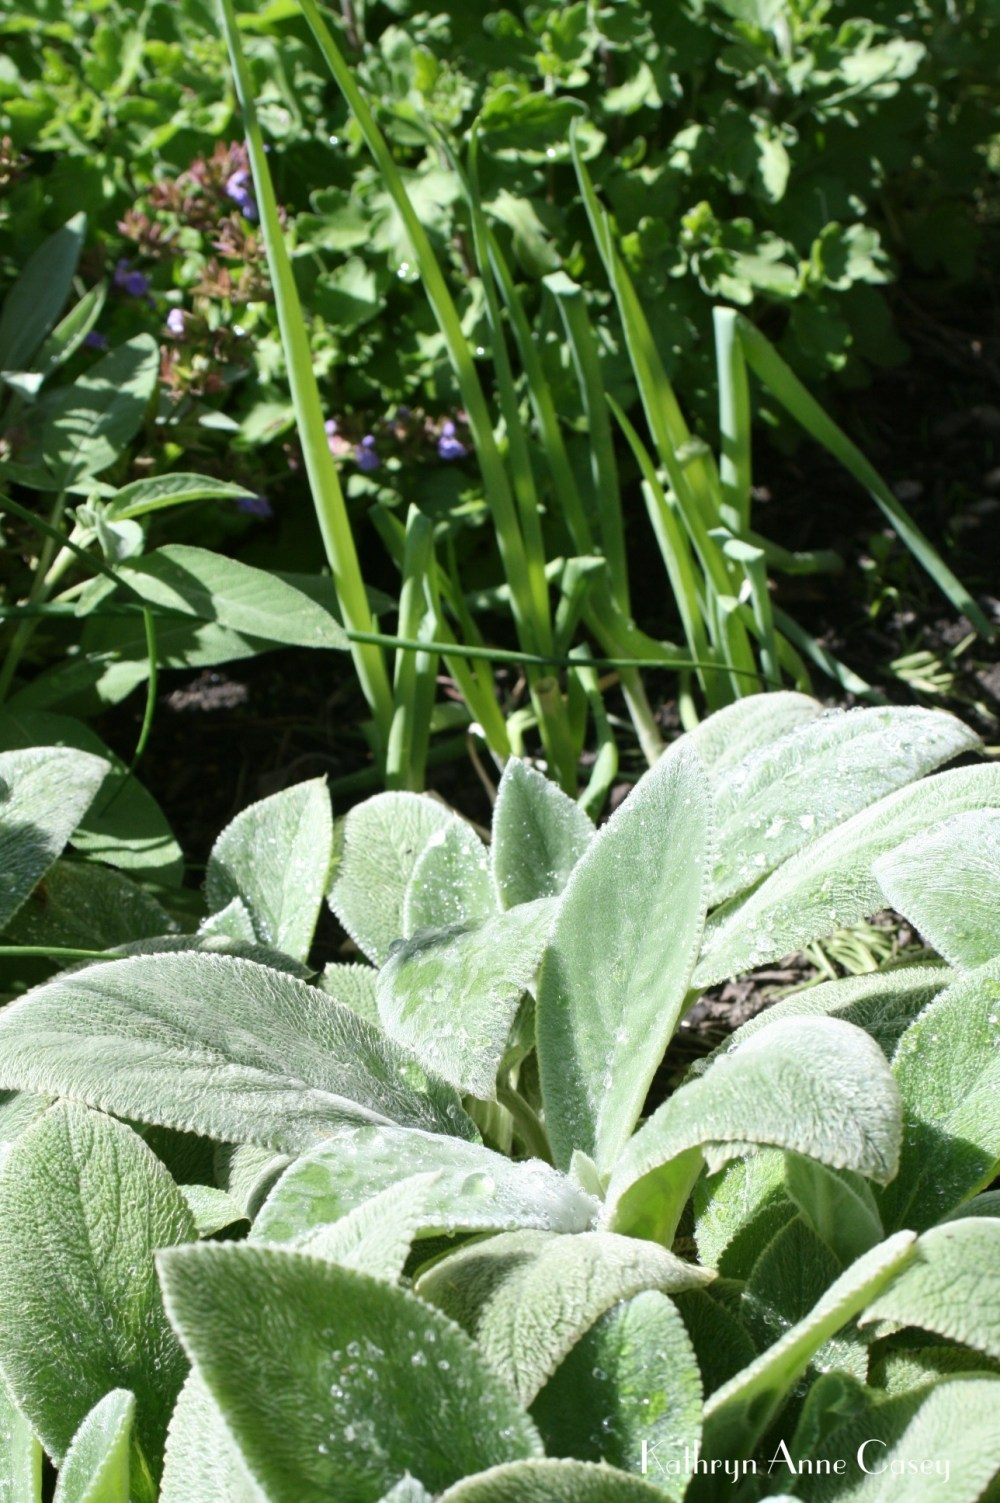 detail of suburban herb garden, lamb's ears and onions